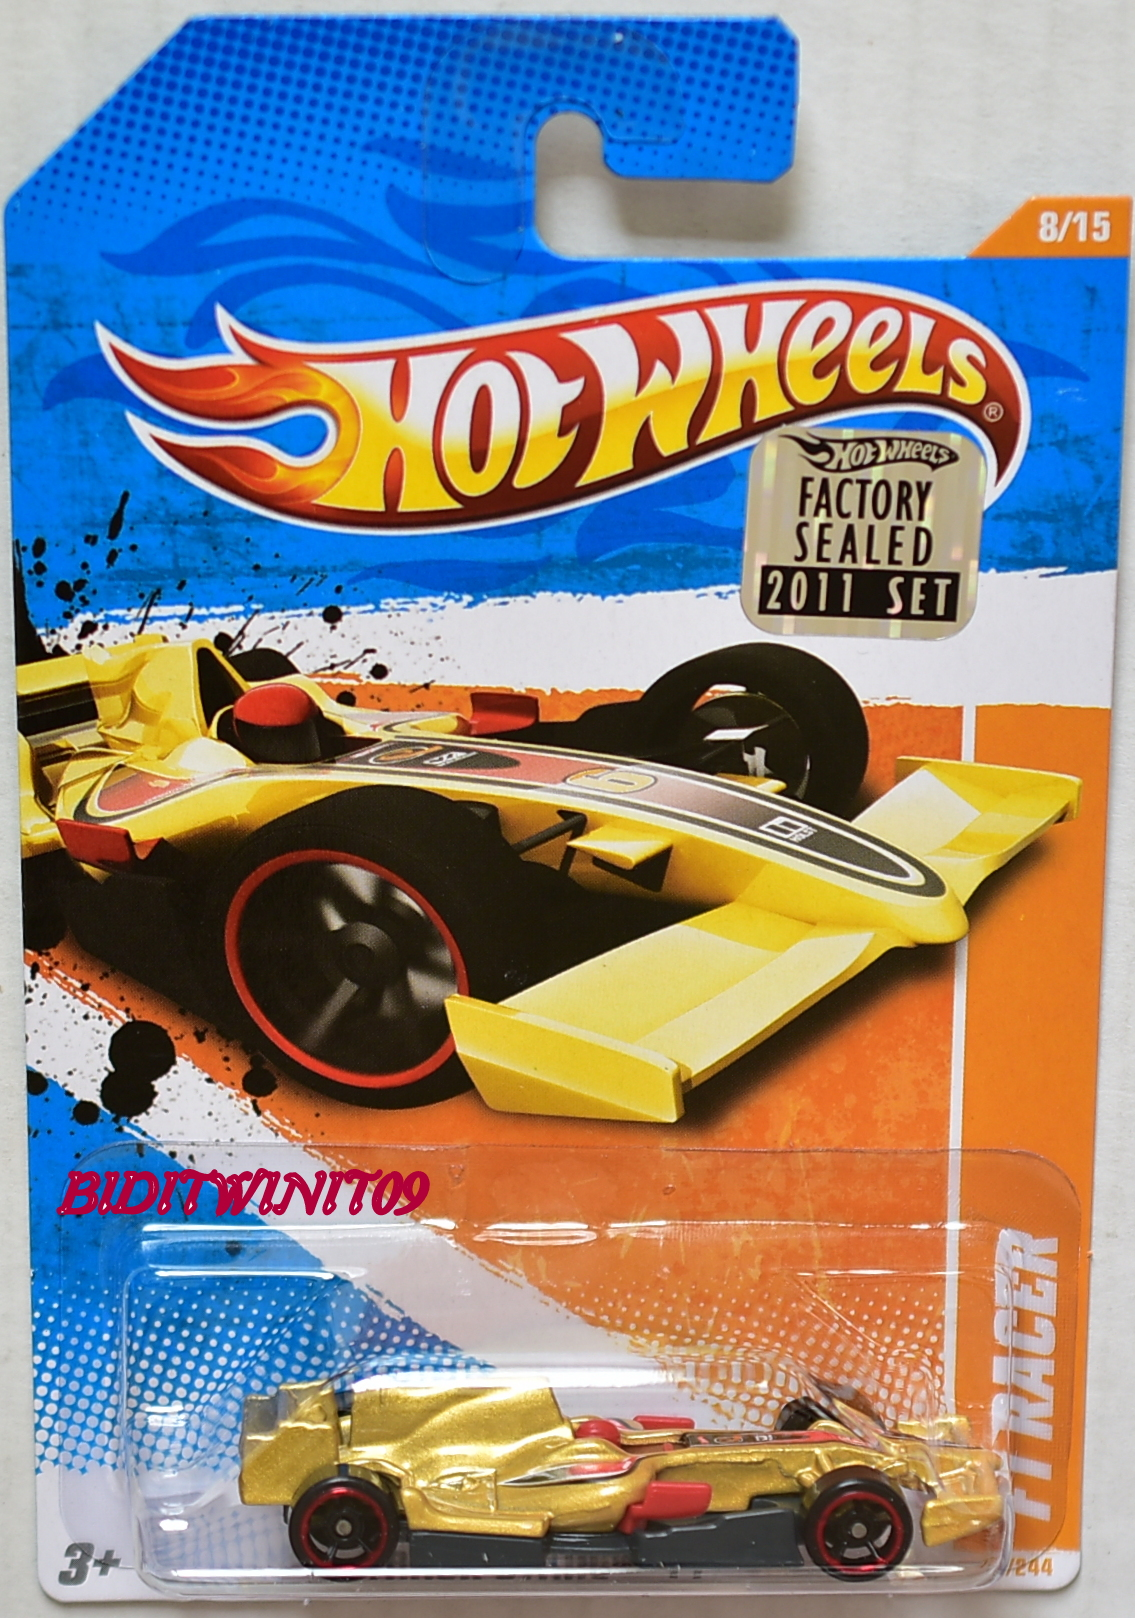 HOT WHEELS 2011 TRACK STARS F1 RACER #8/15 FACTORY SEALED